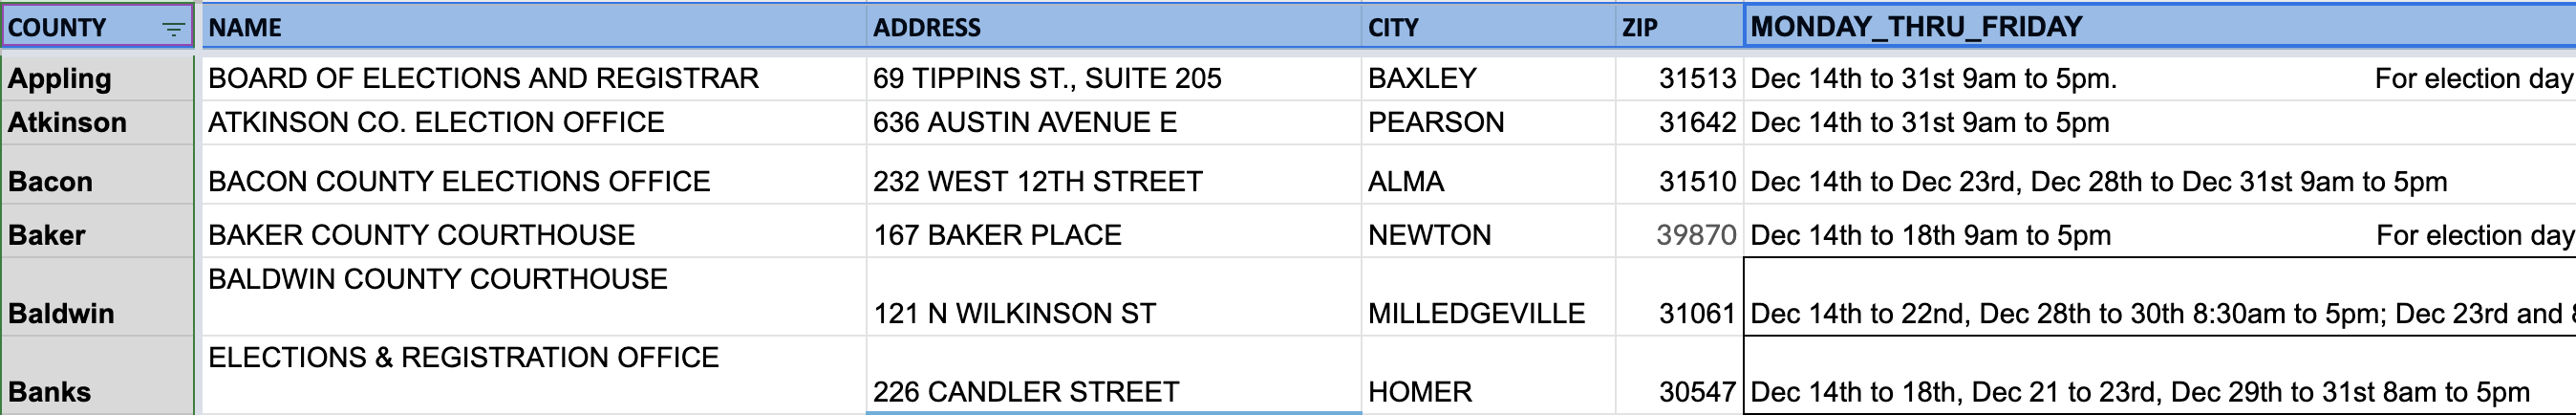 Georgia early voting locations to use as test data to see how the voicebot works.